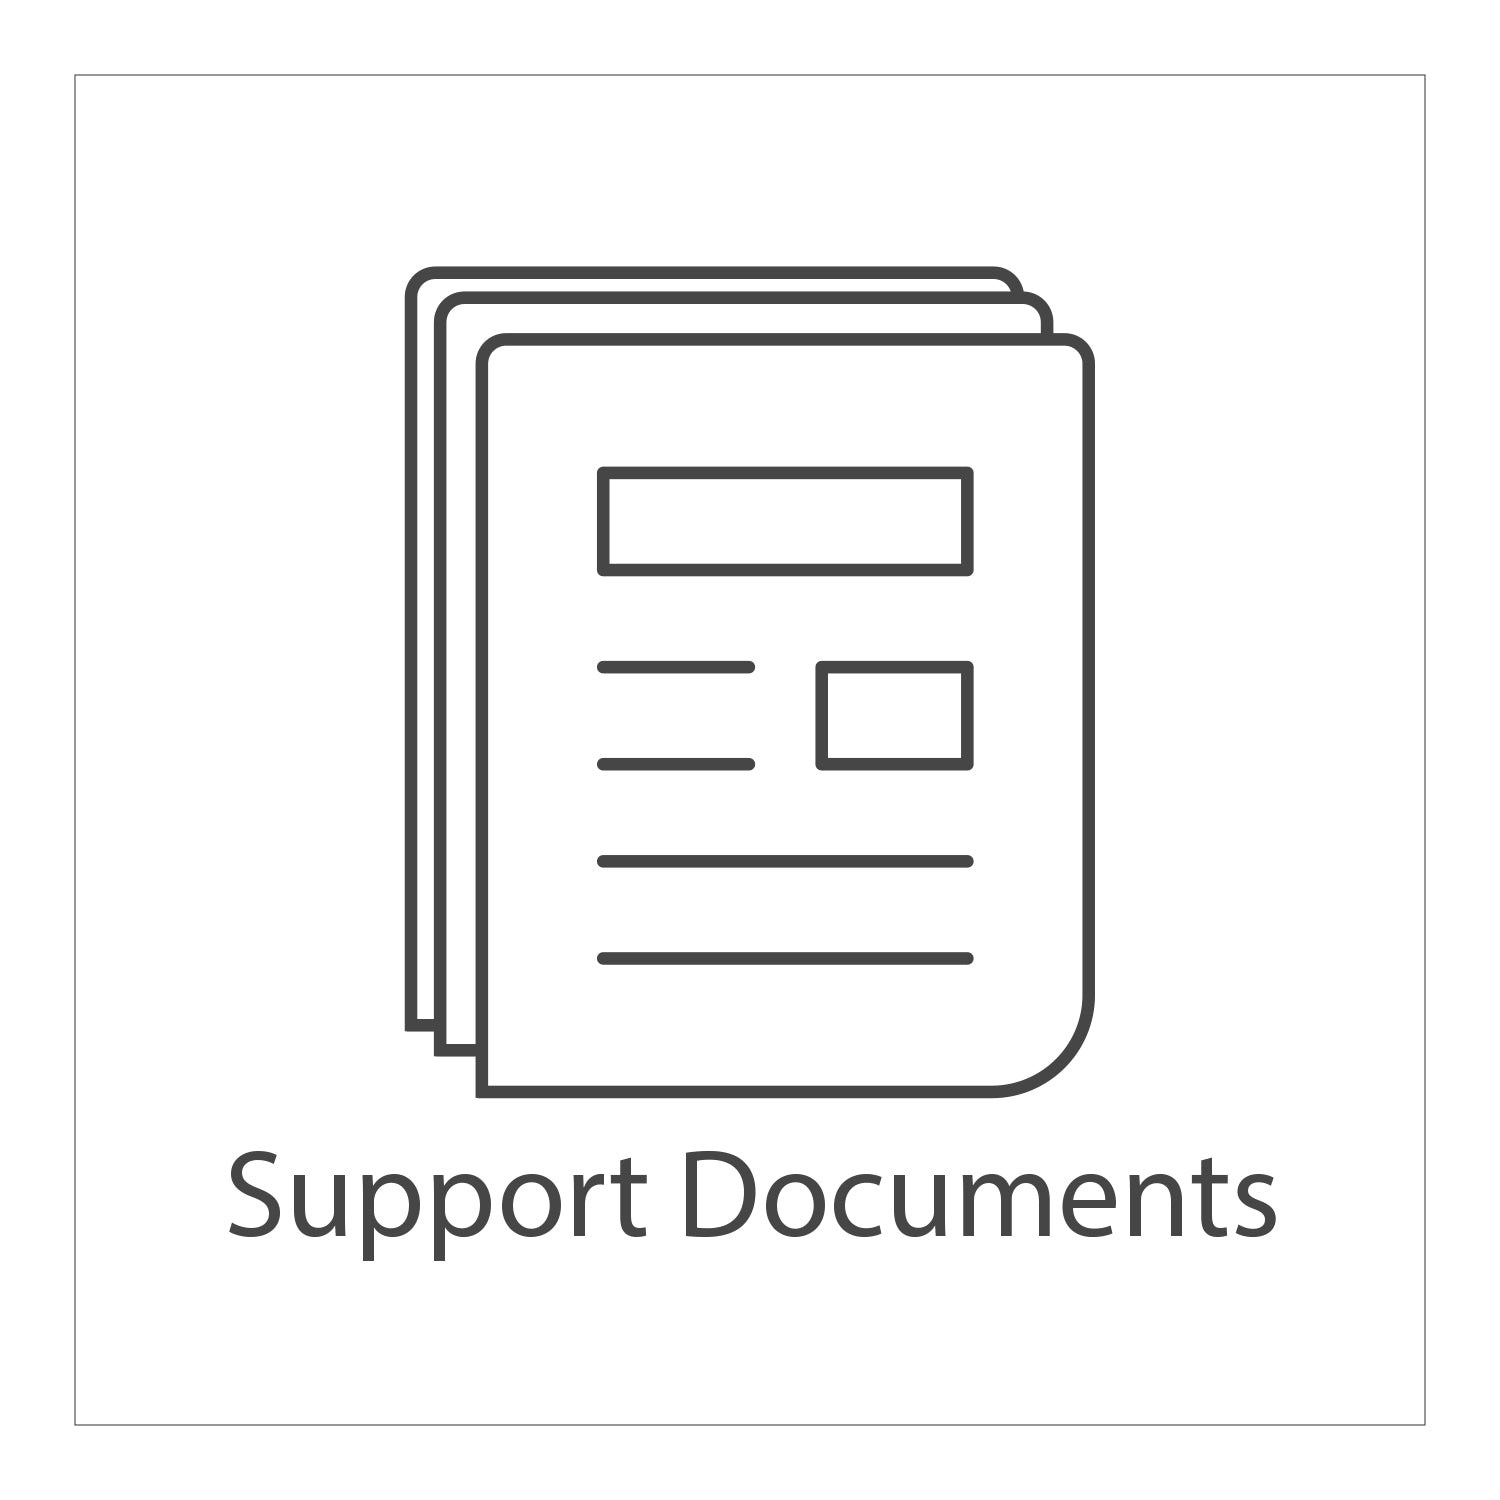 support documents